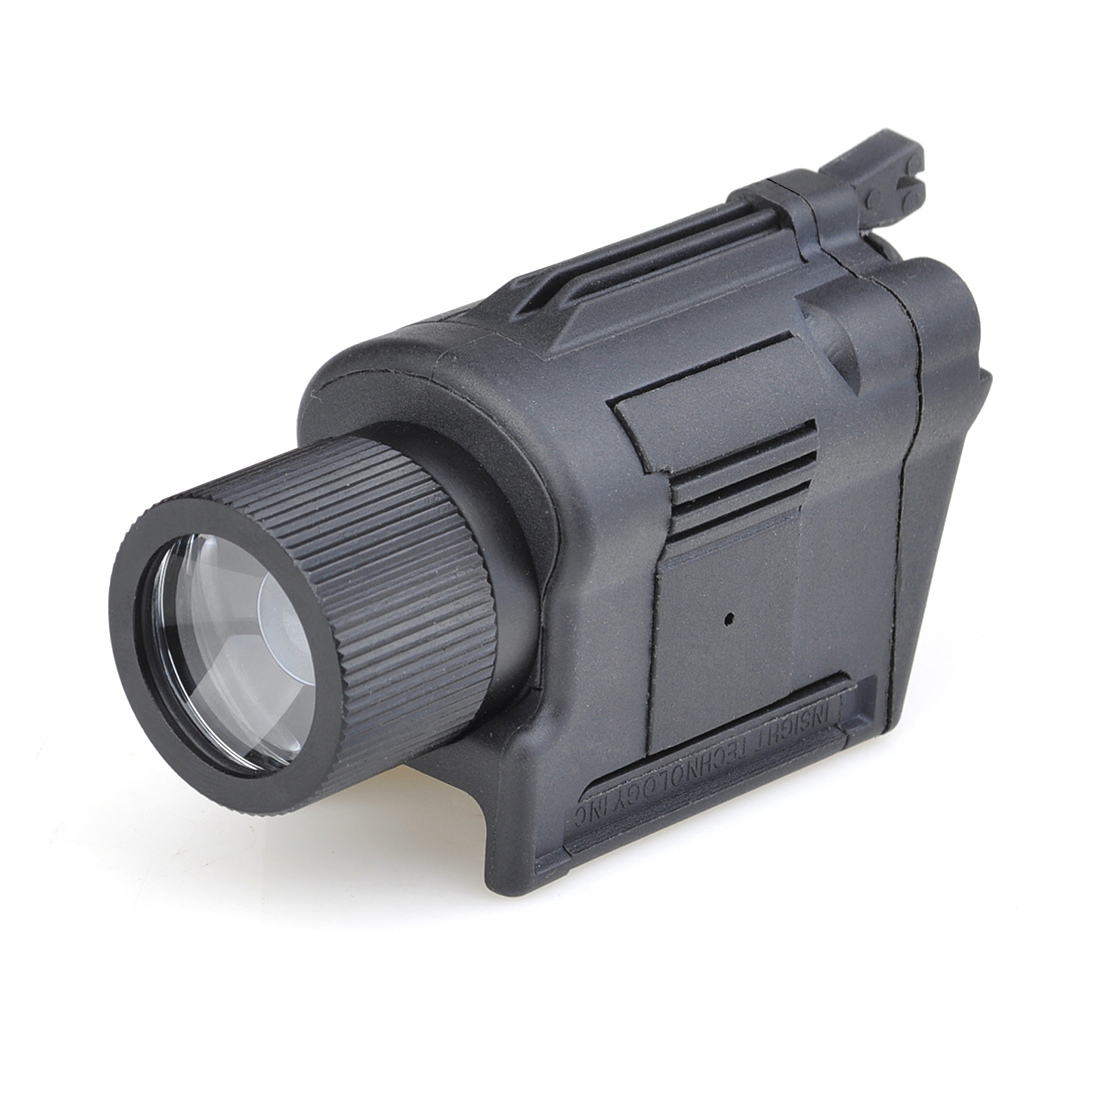 Surwish Element USP MkII Tactical Light Floodlight for Nerf Black